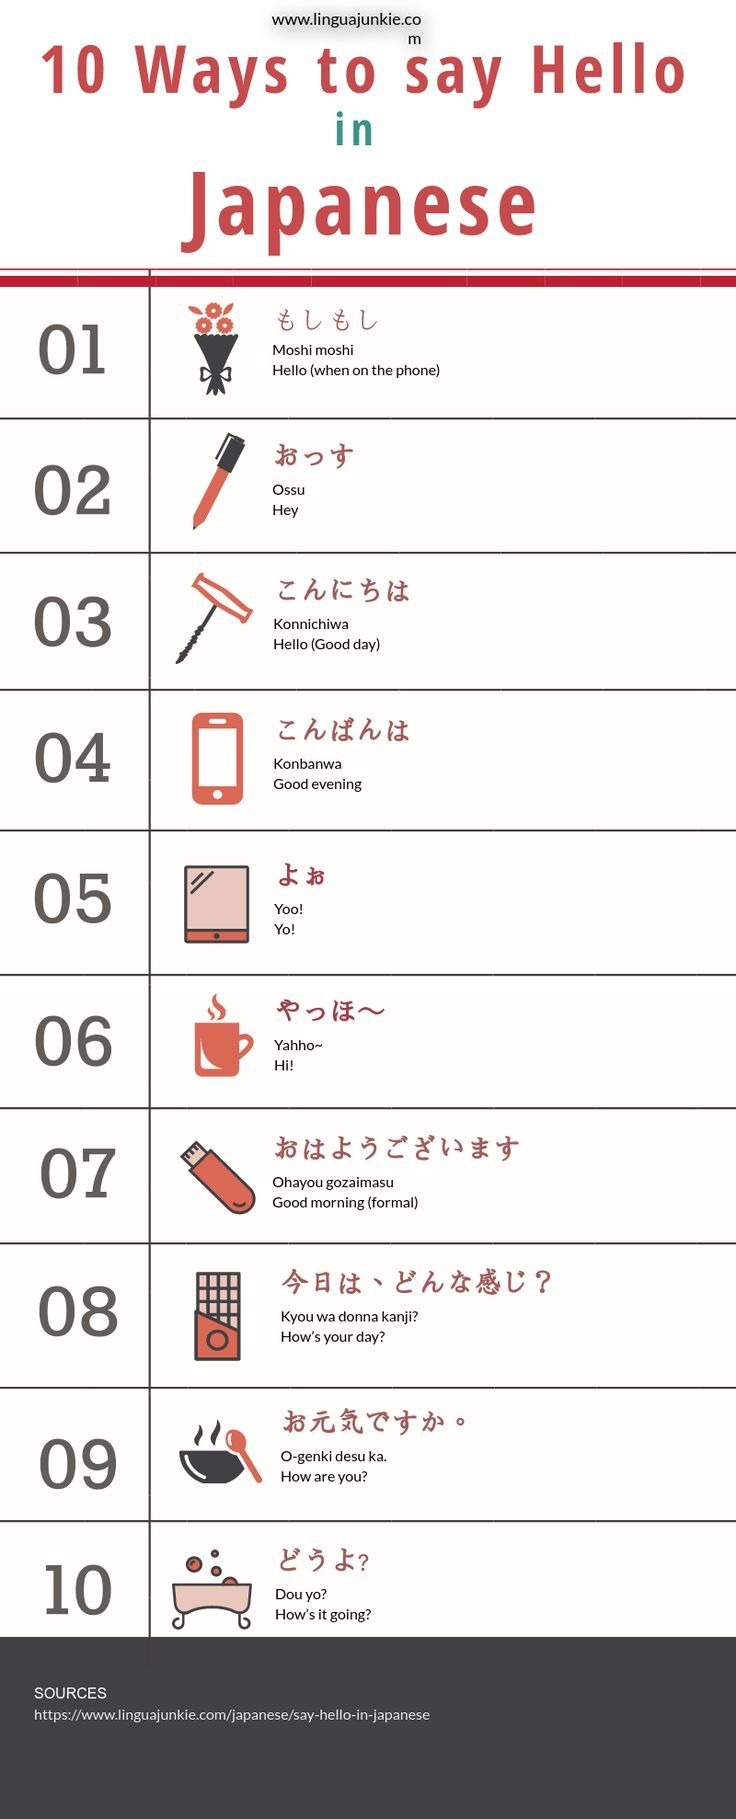 What's the best way to learn Japanese? | Yahoo Answers